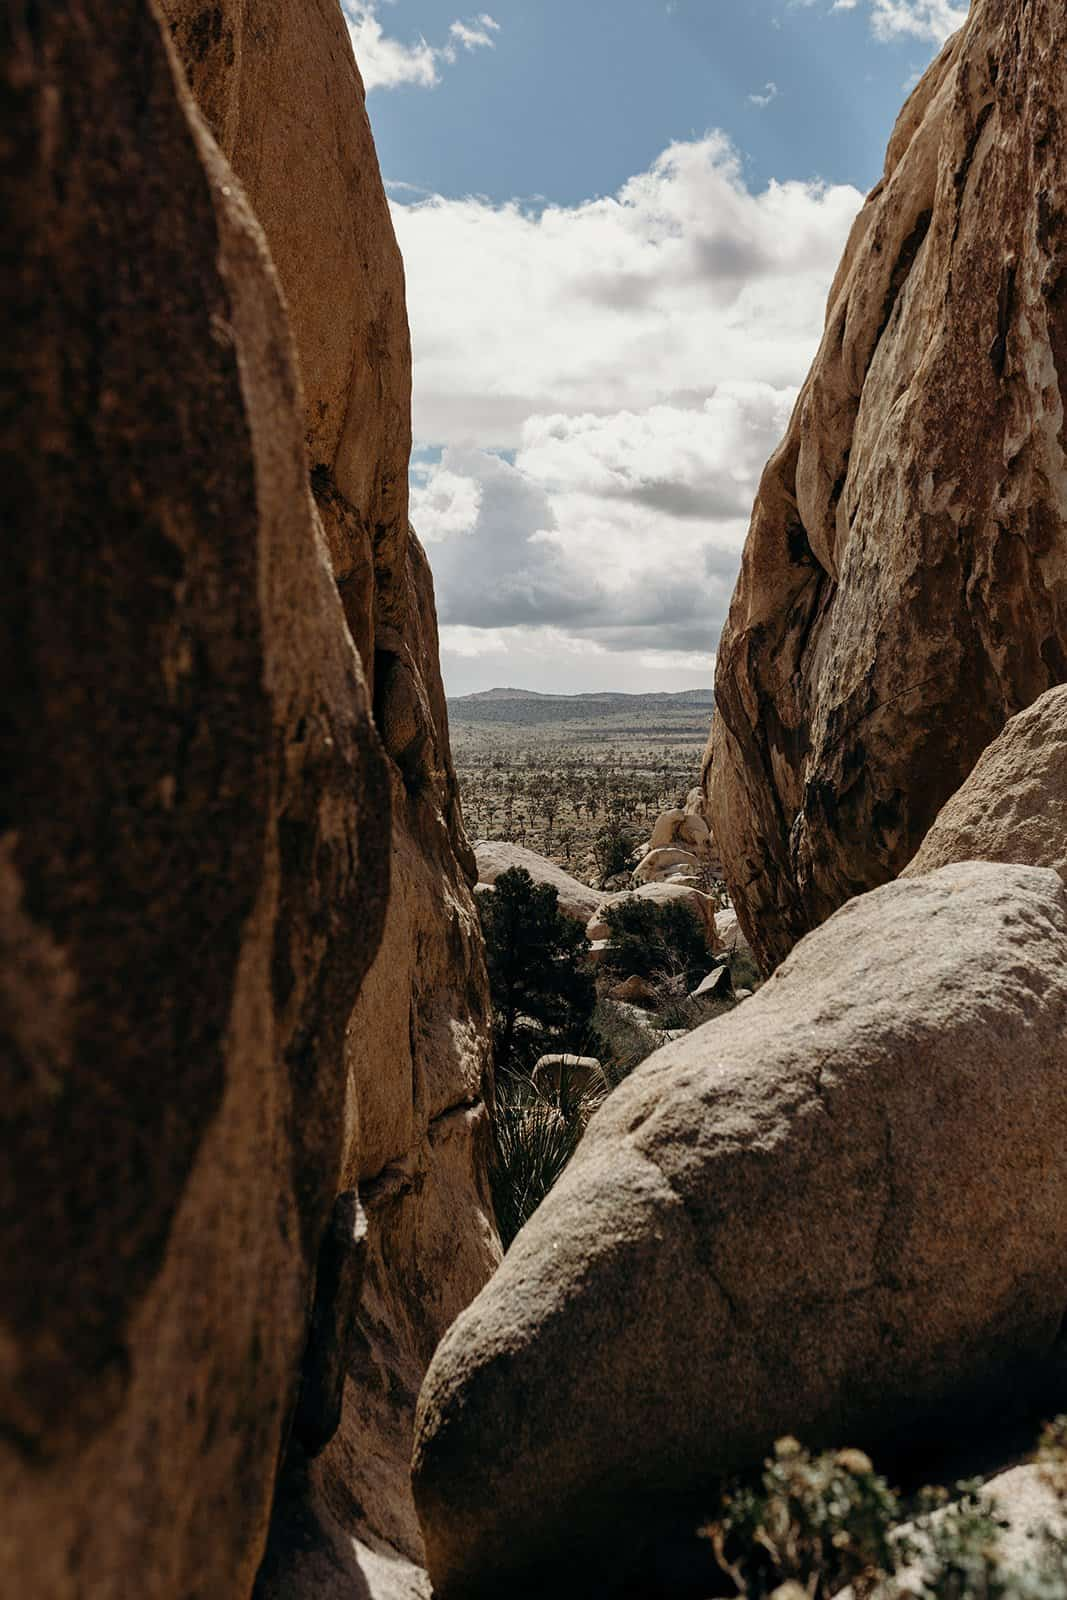 View from climb in Joshua Tree National Park